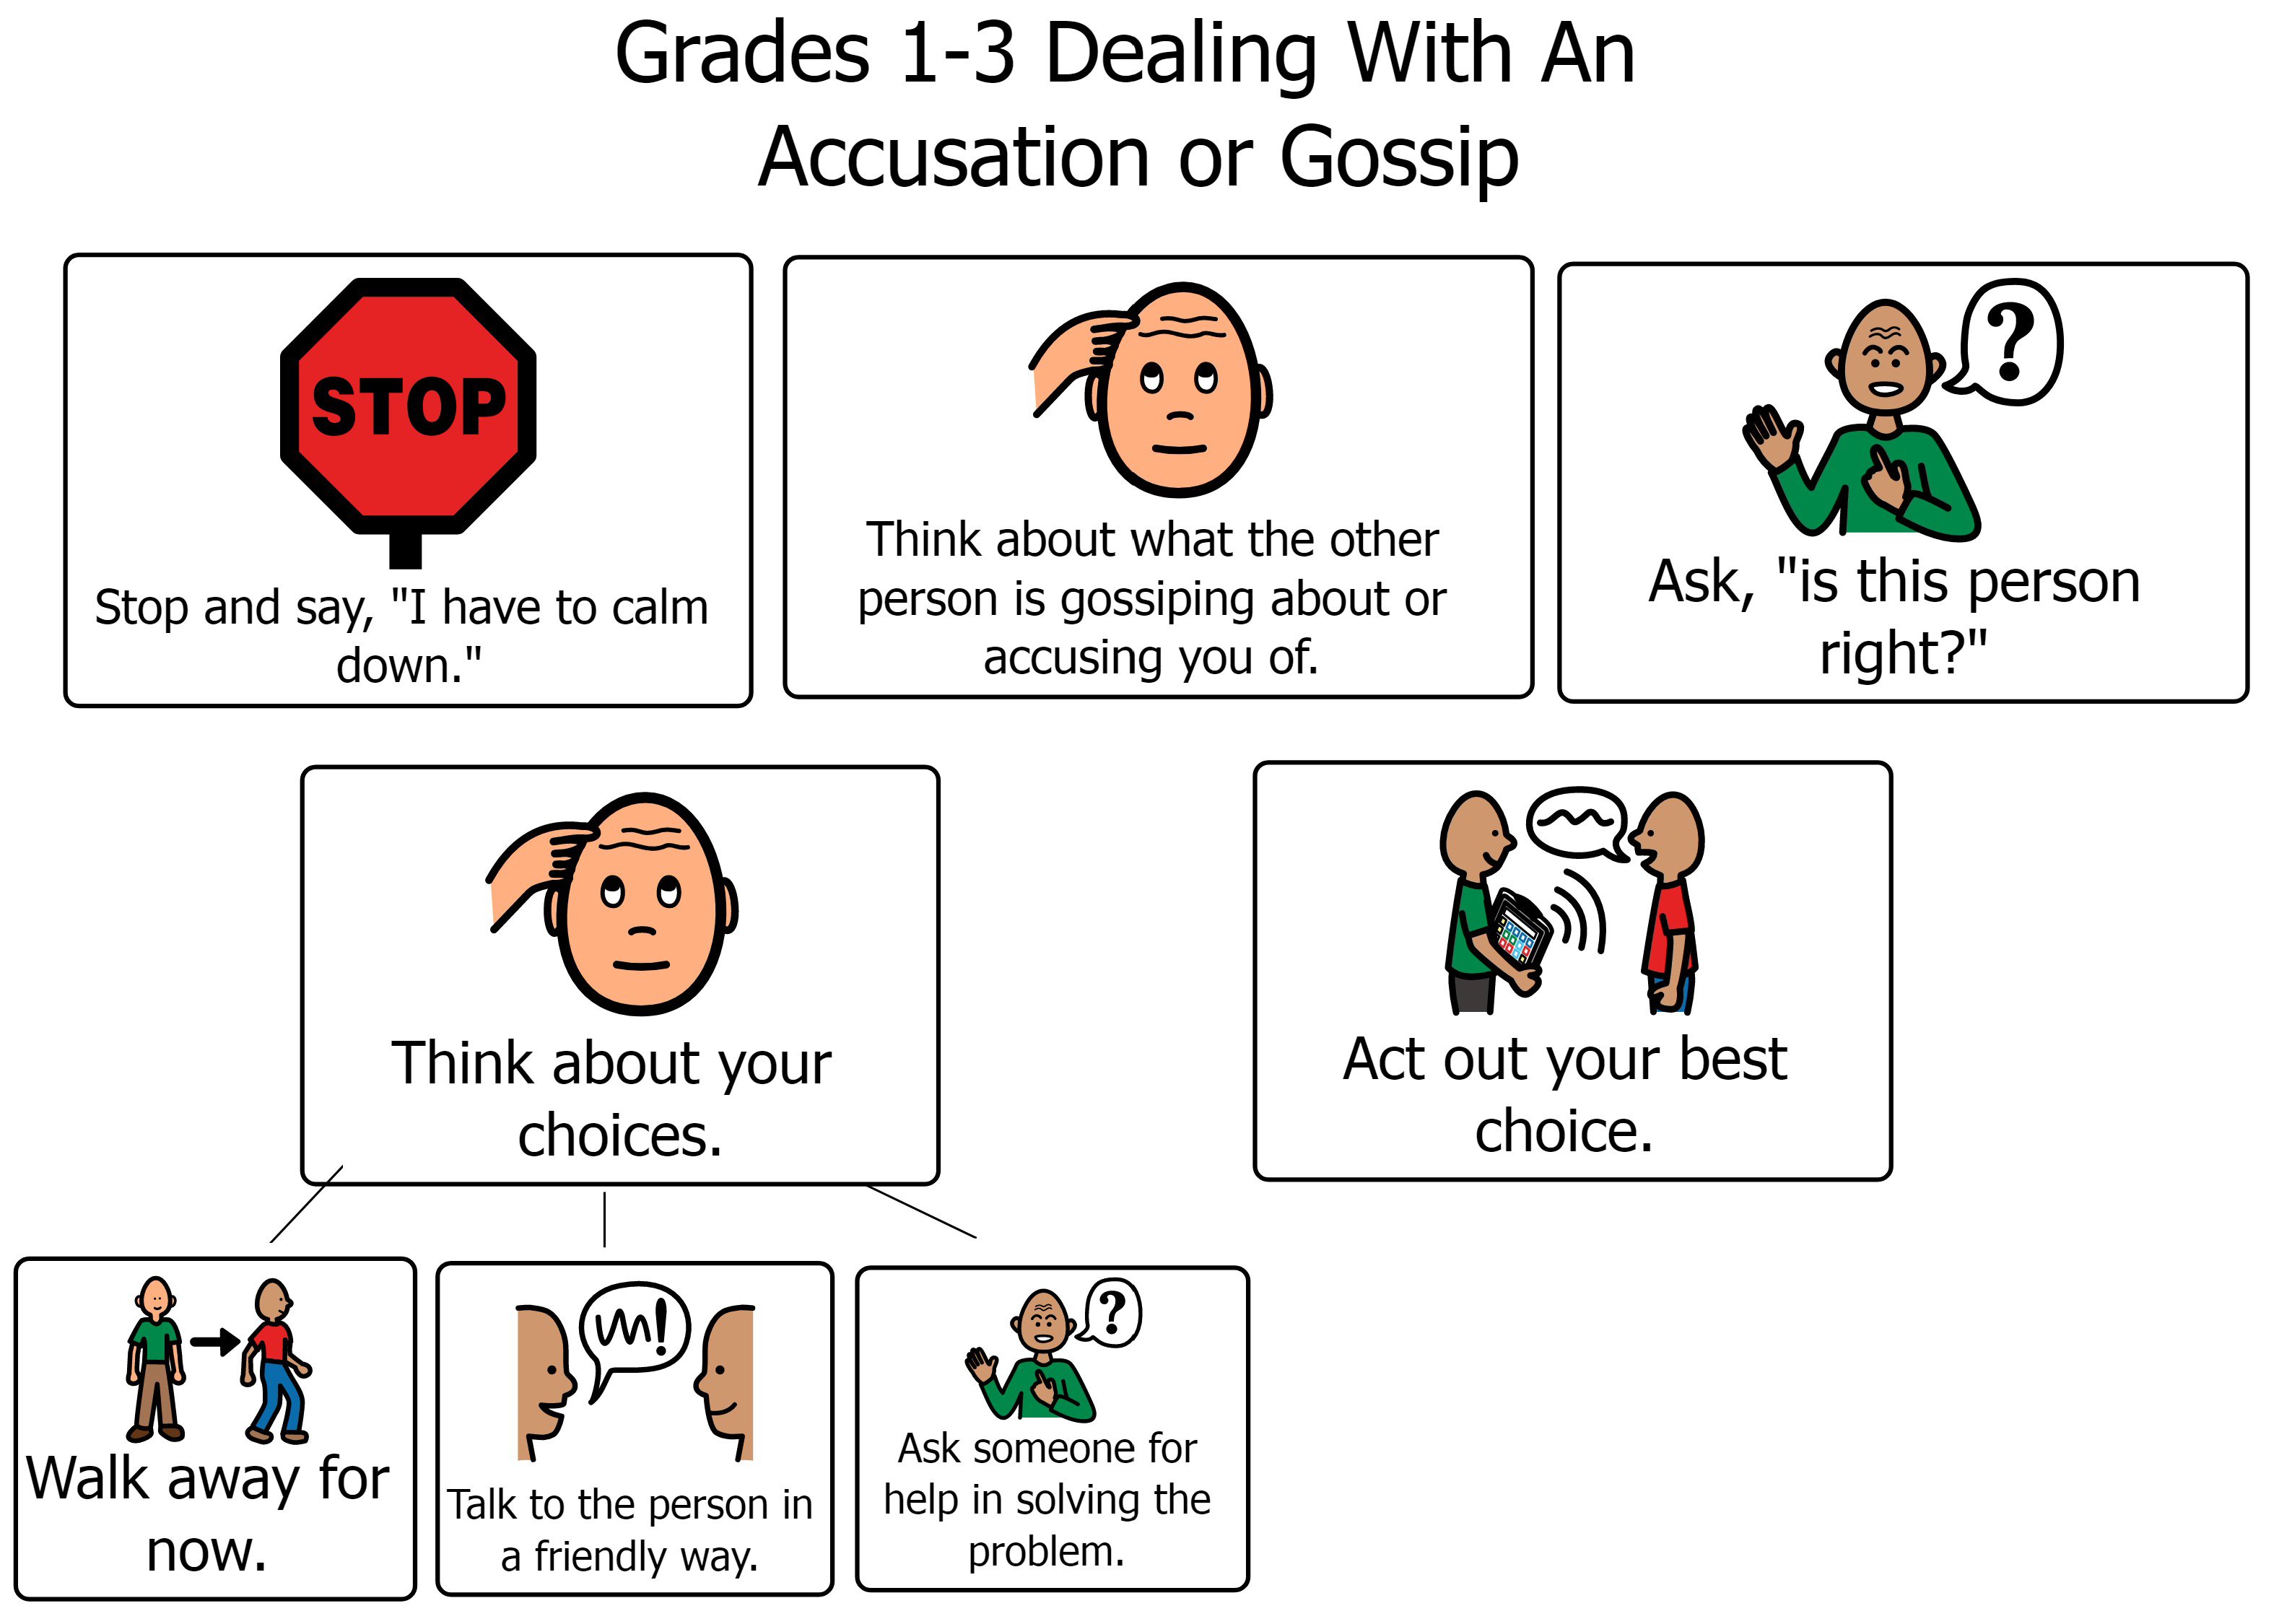 Grades 1-3 Dealing With An Accusation or Gossip